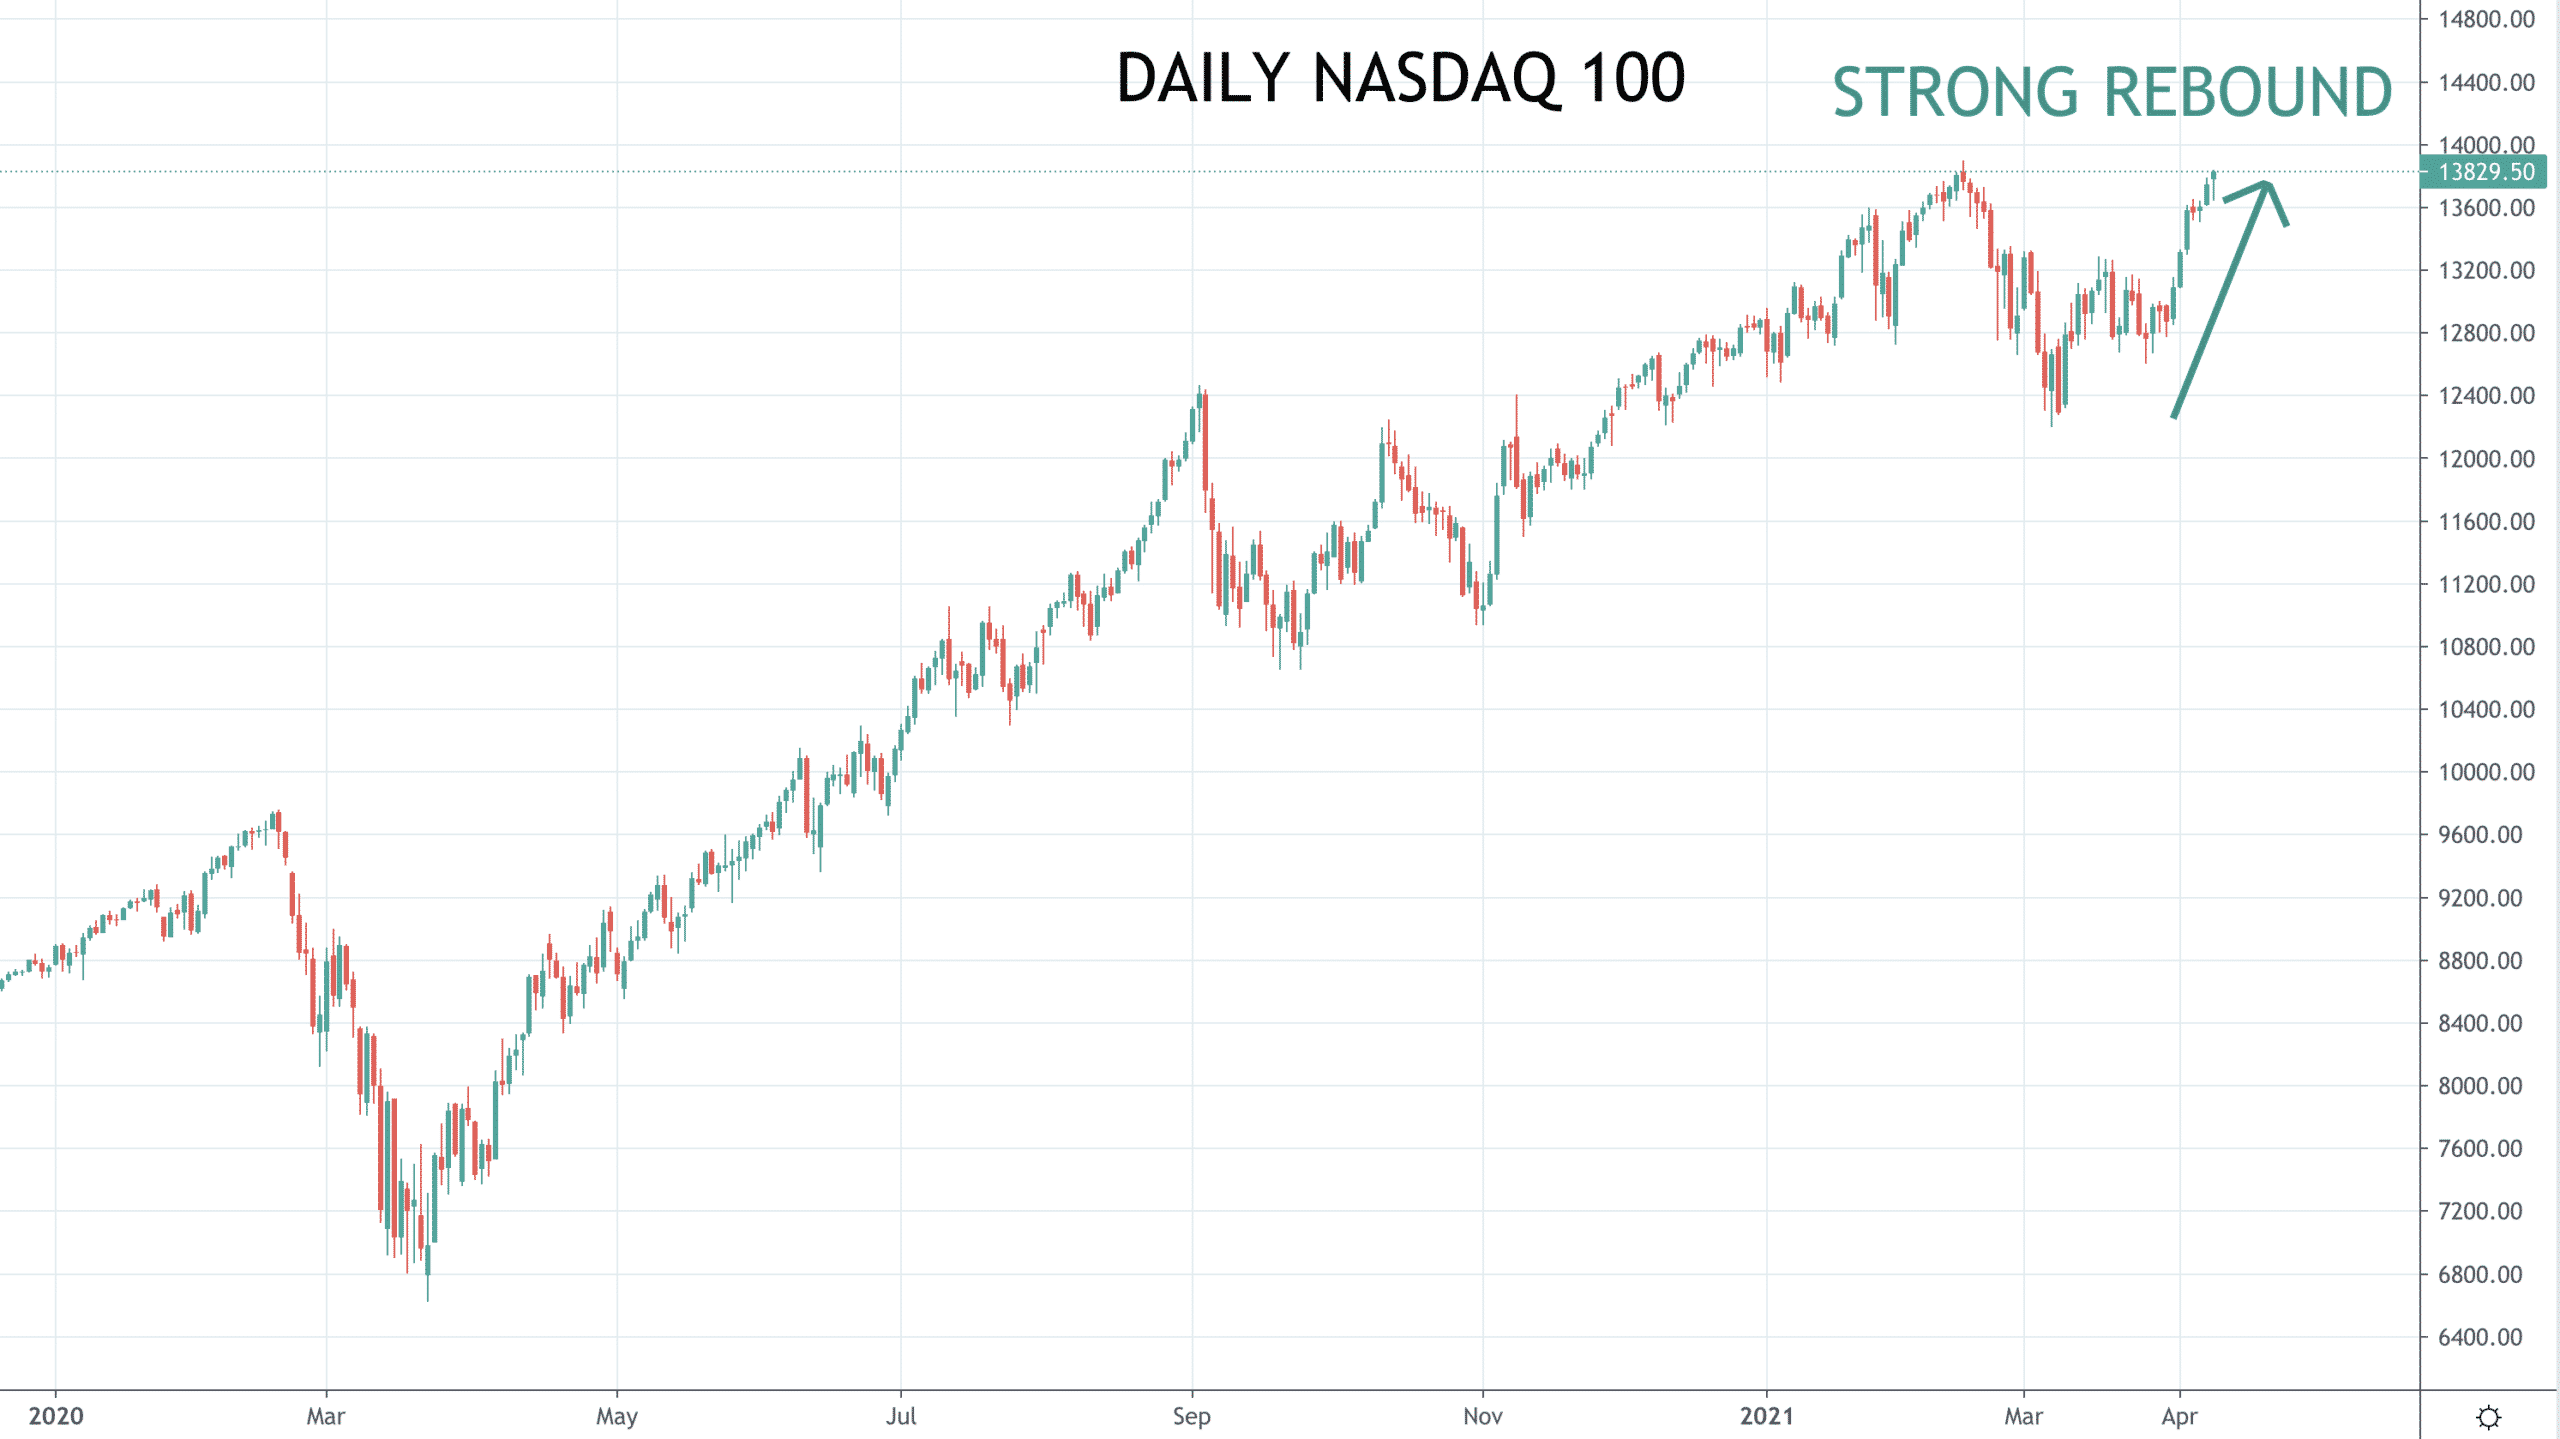 Stock averages surge to all-time highs, growth stocks re-energizing Image